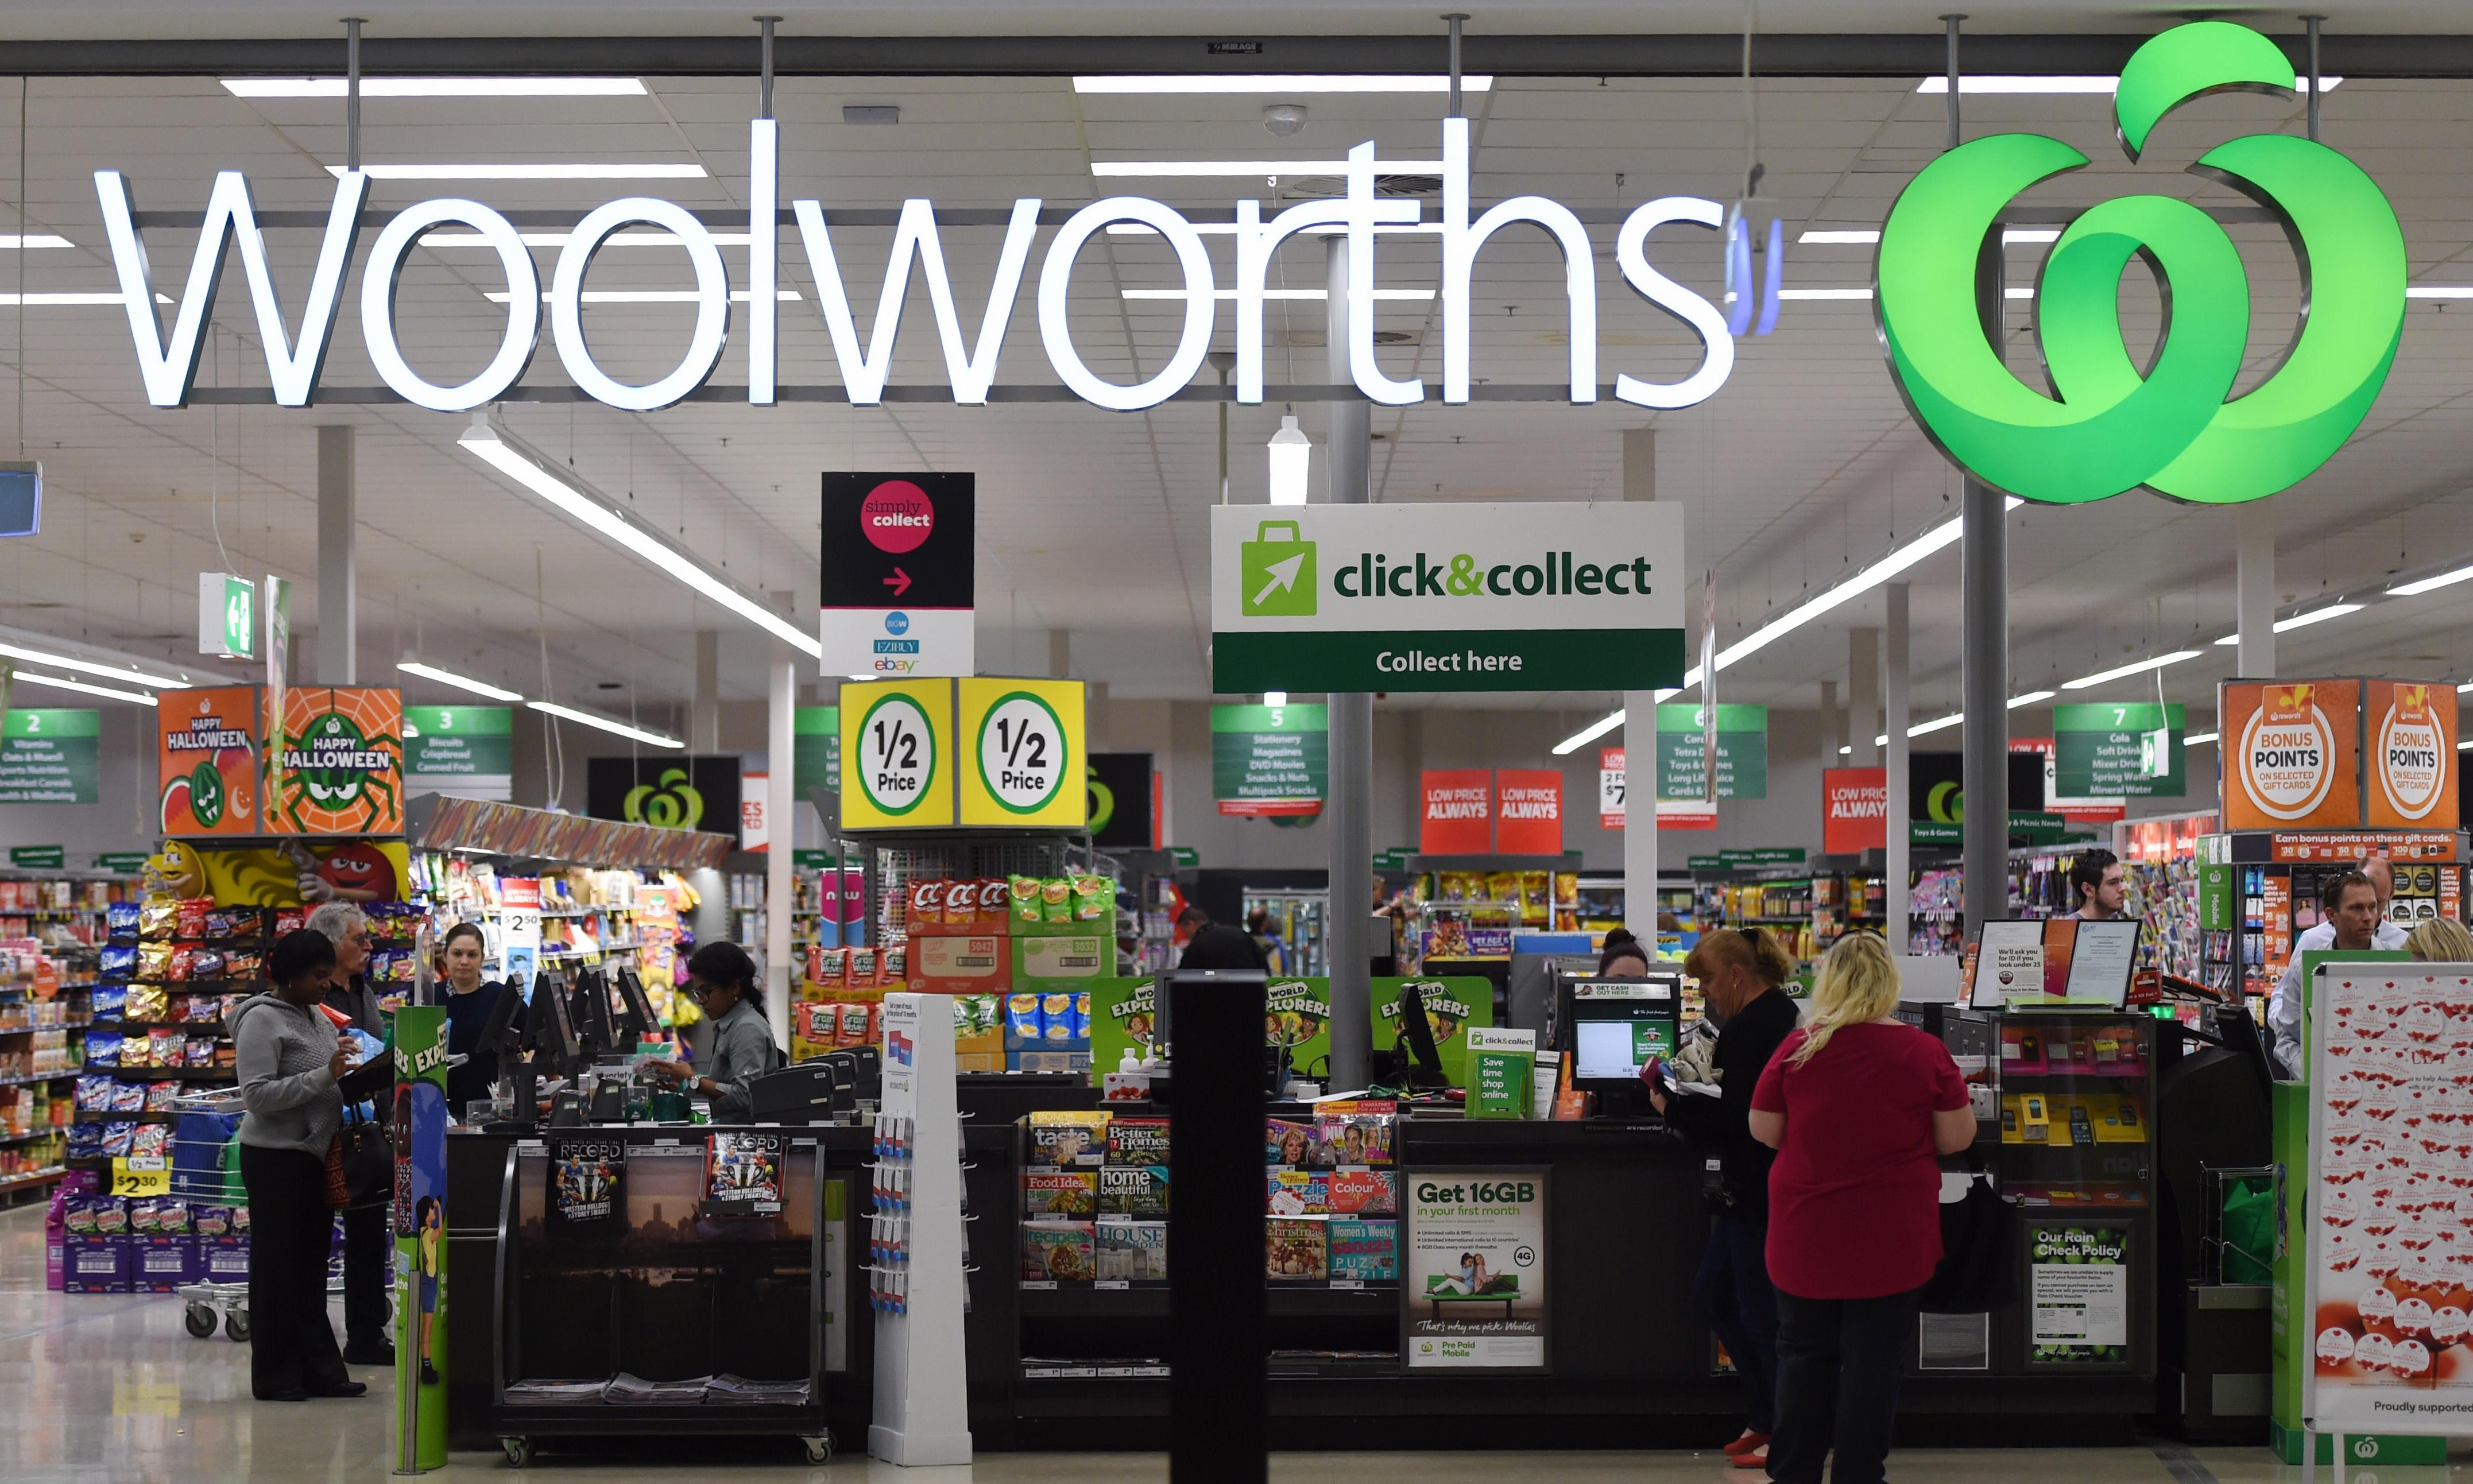 Woolworths plan to have staff pack shelves on Christmas Day blocked